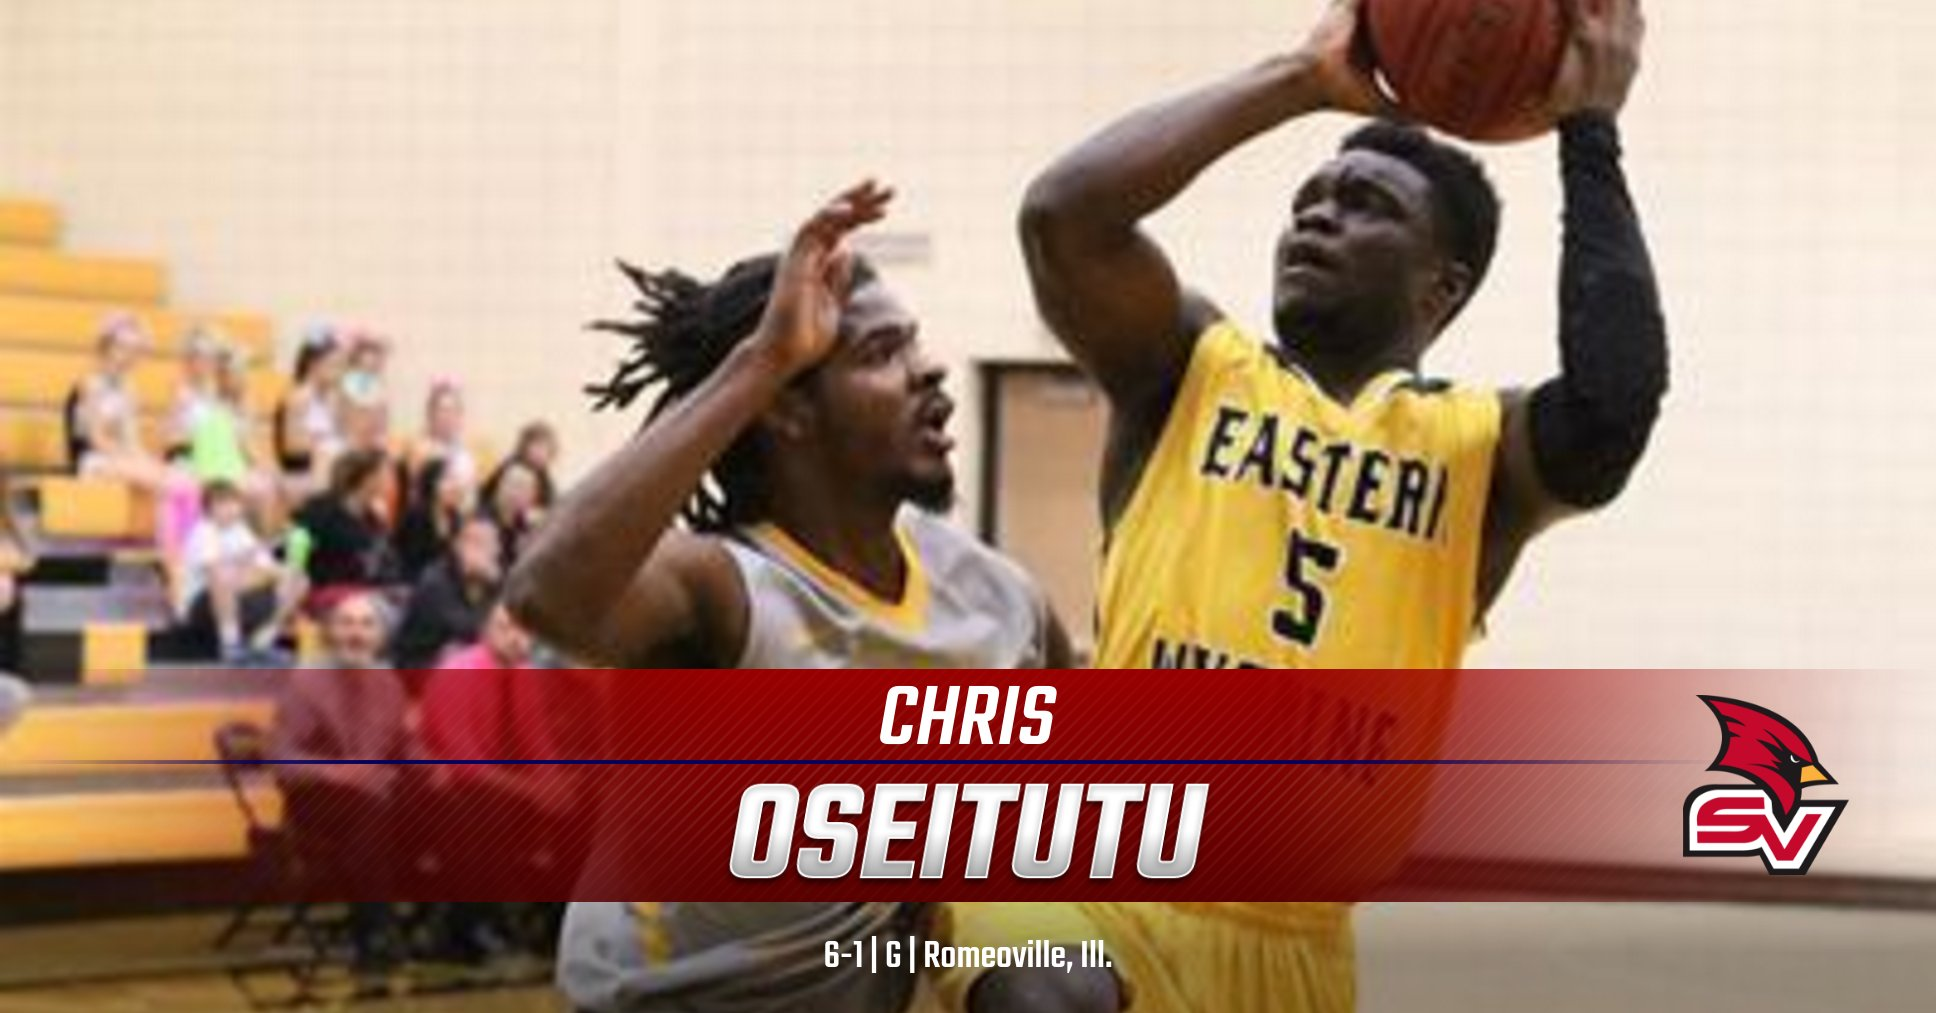 Cardinal Men announce the addition of Chris Oseitutu